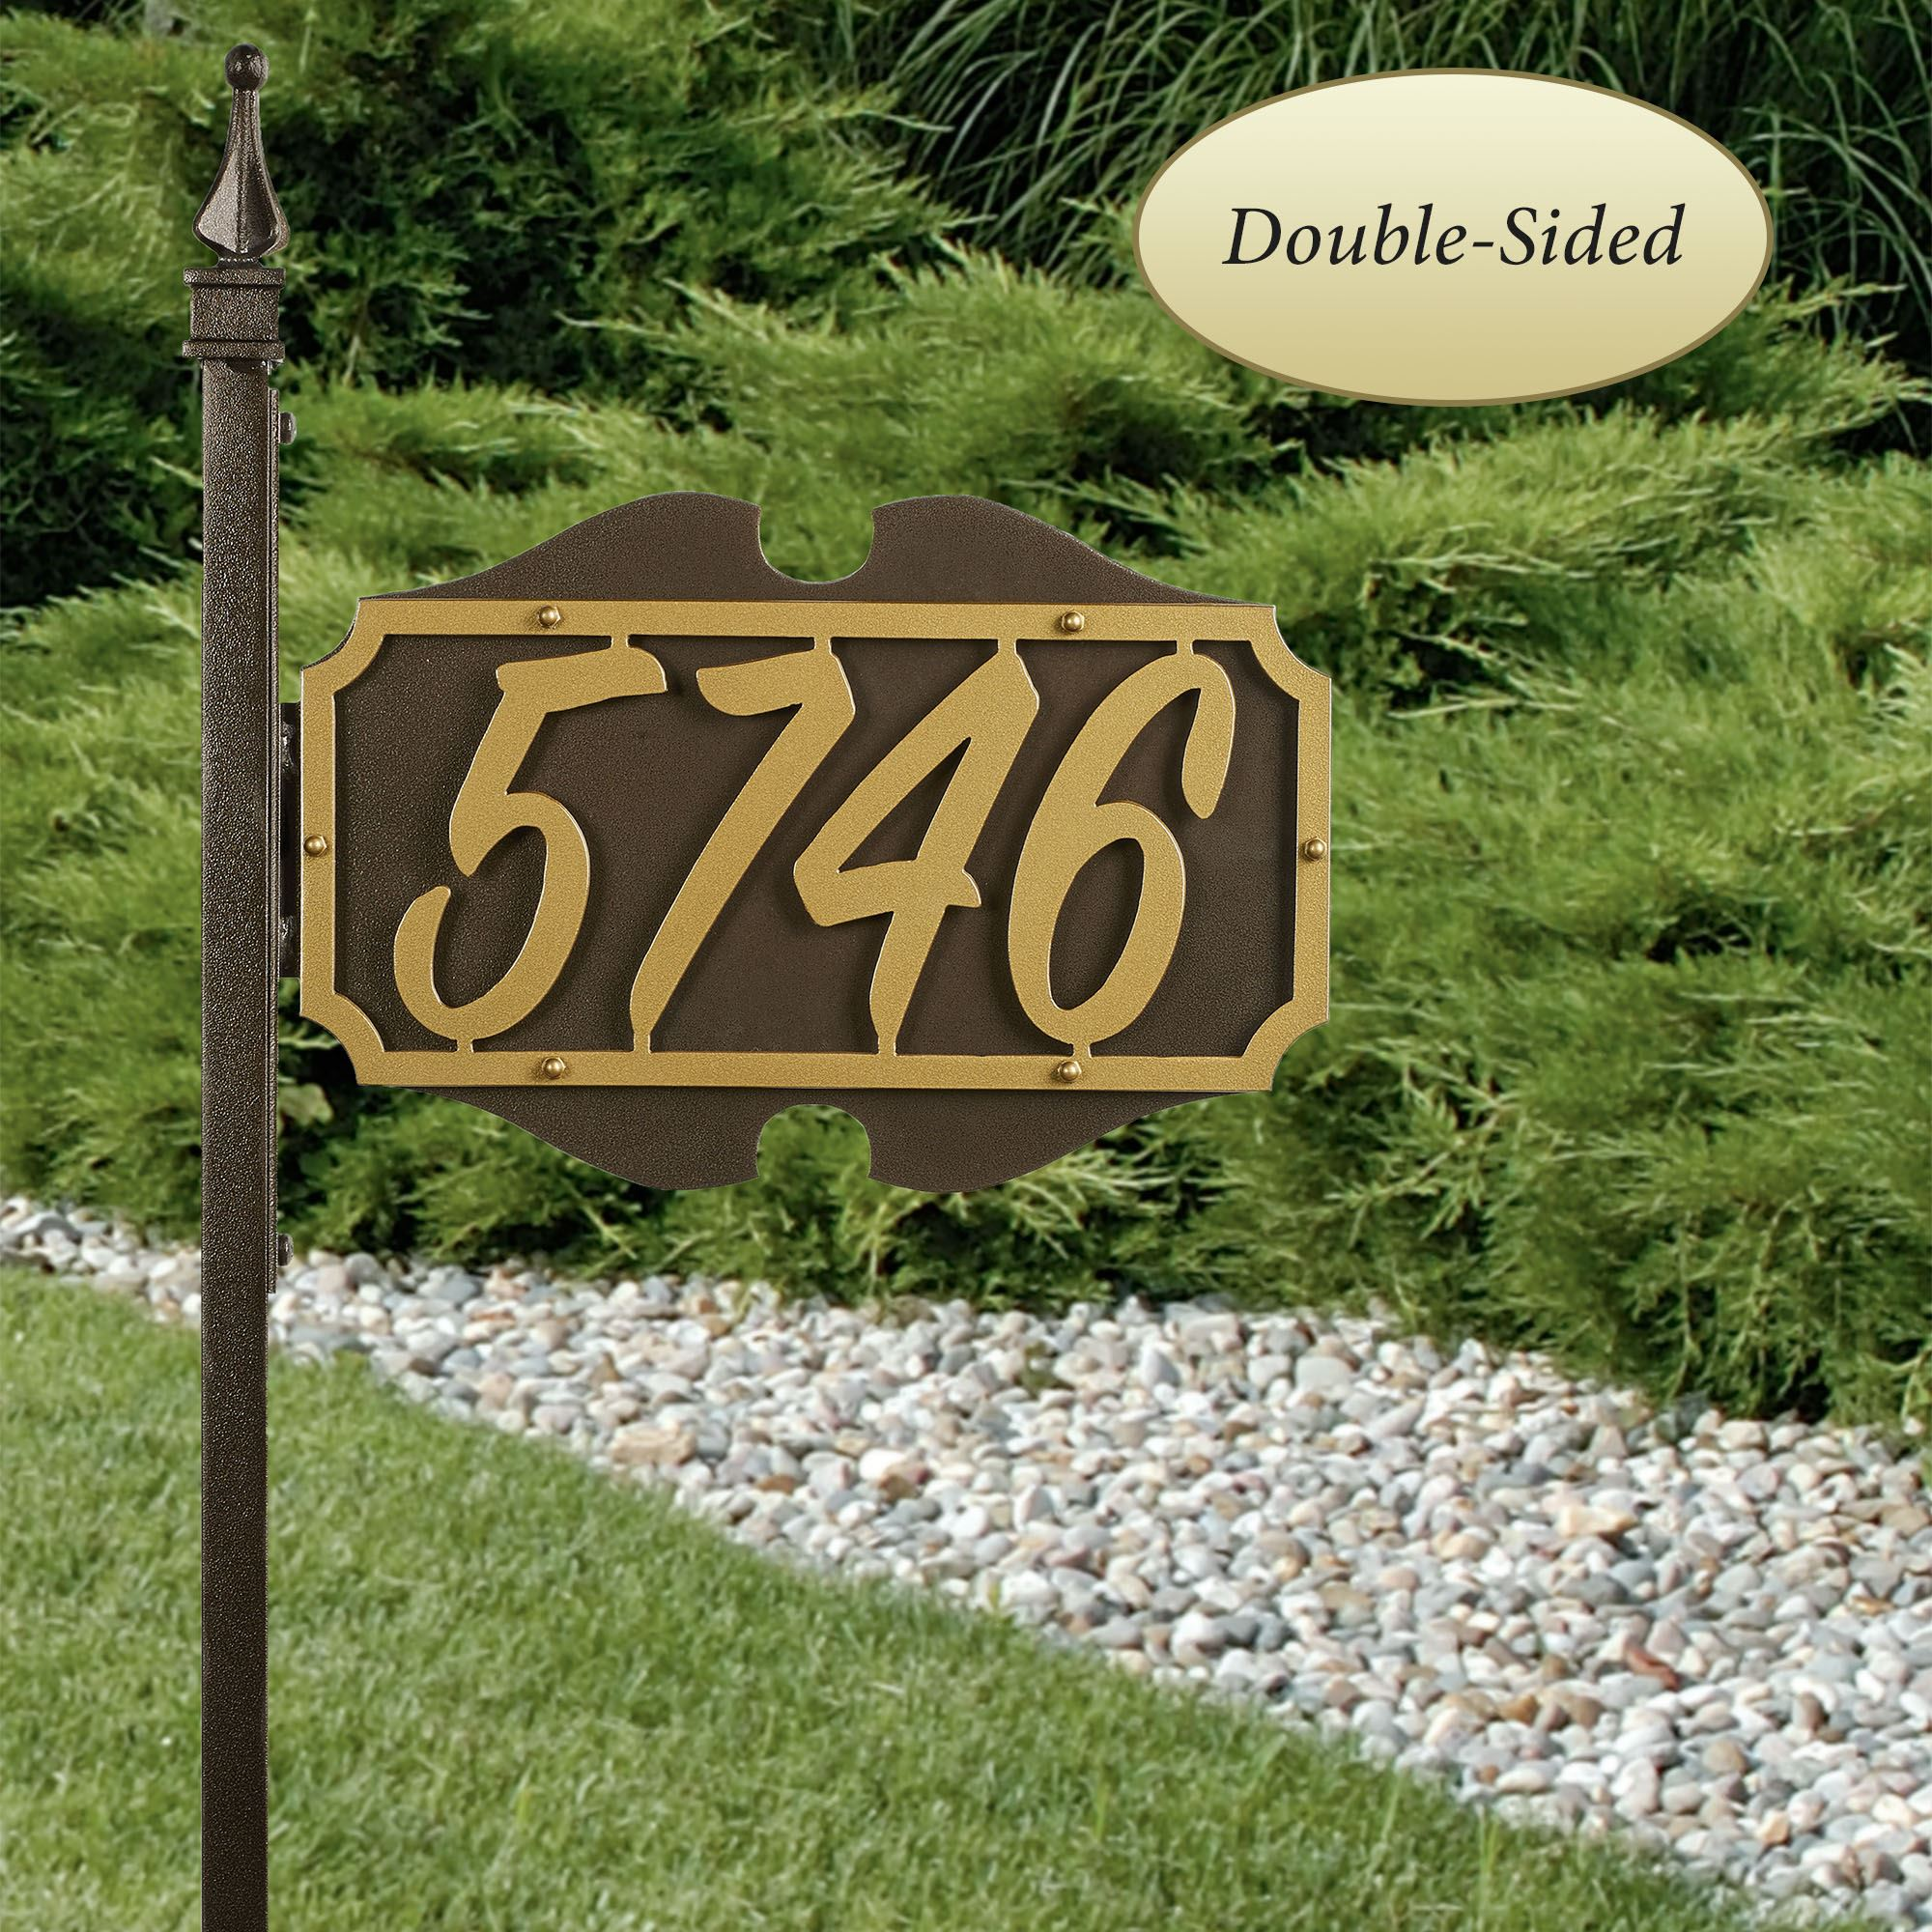 Shepherd Monument Yard Address Number Sign Stake